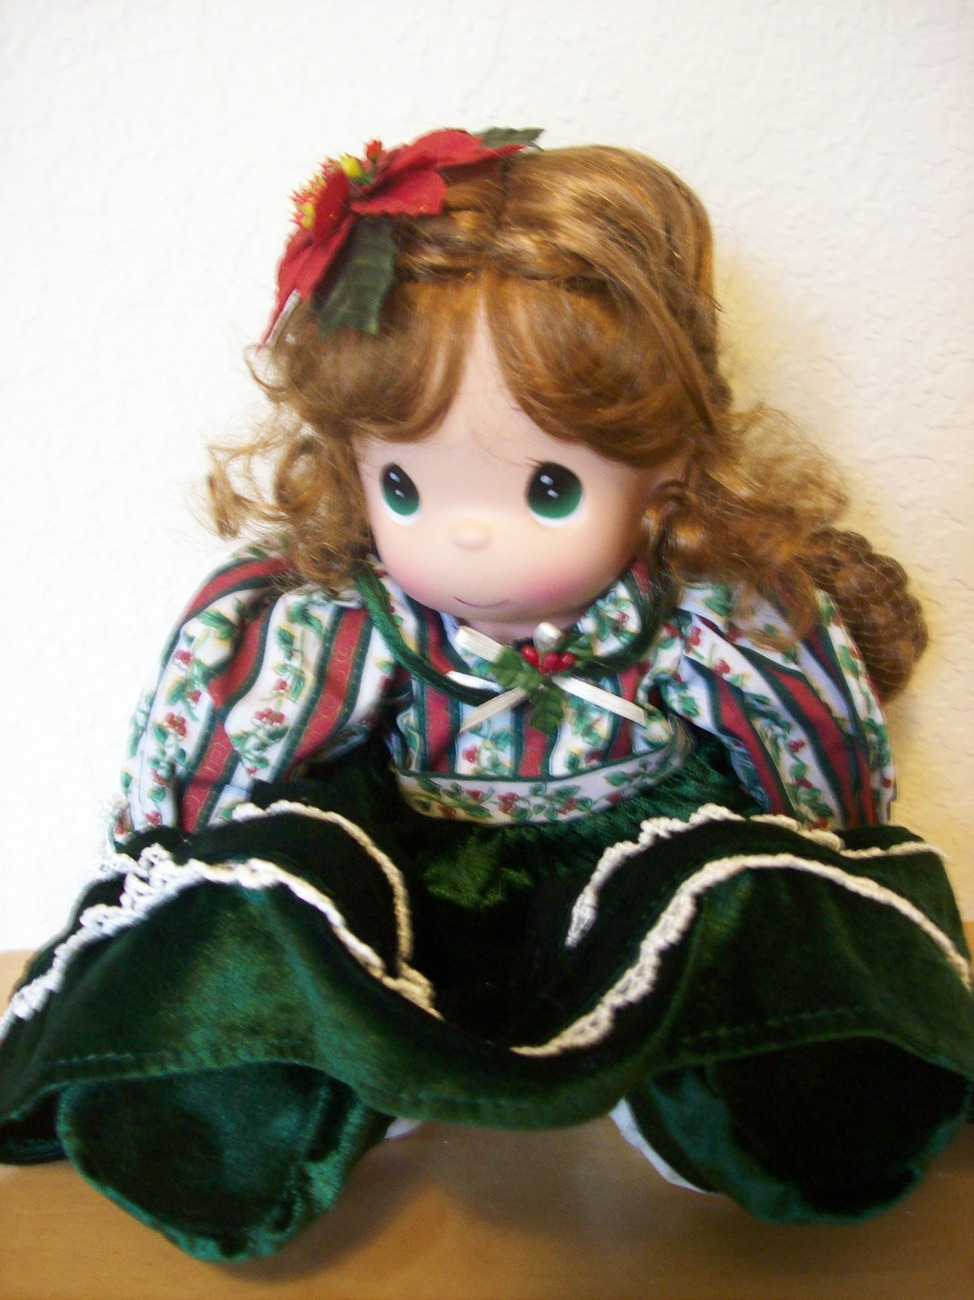 2004 Precious Moments Belle Christmas Stocking Doll  - $85.00